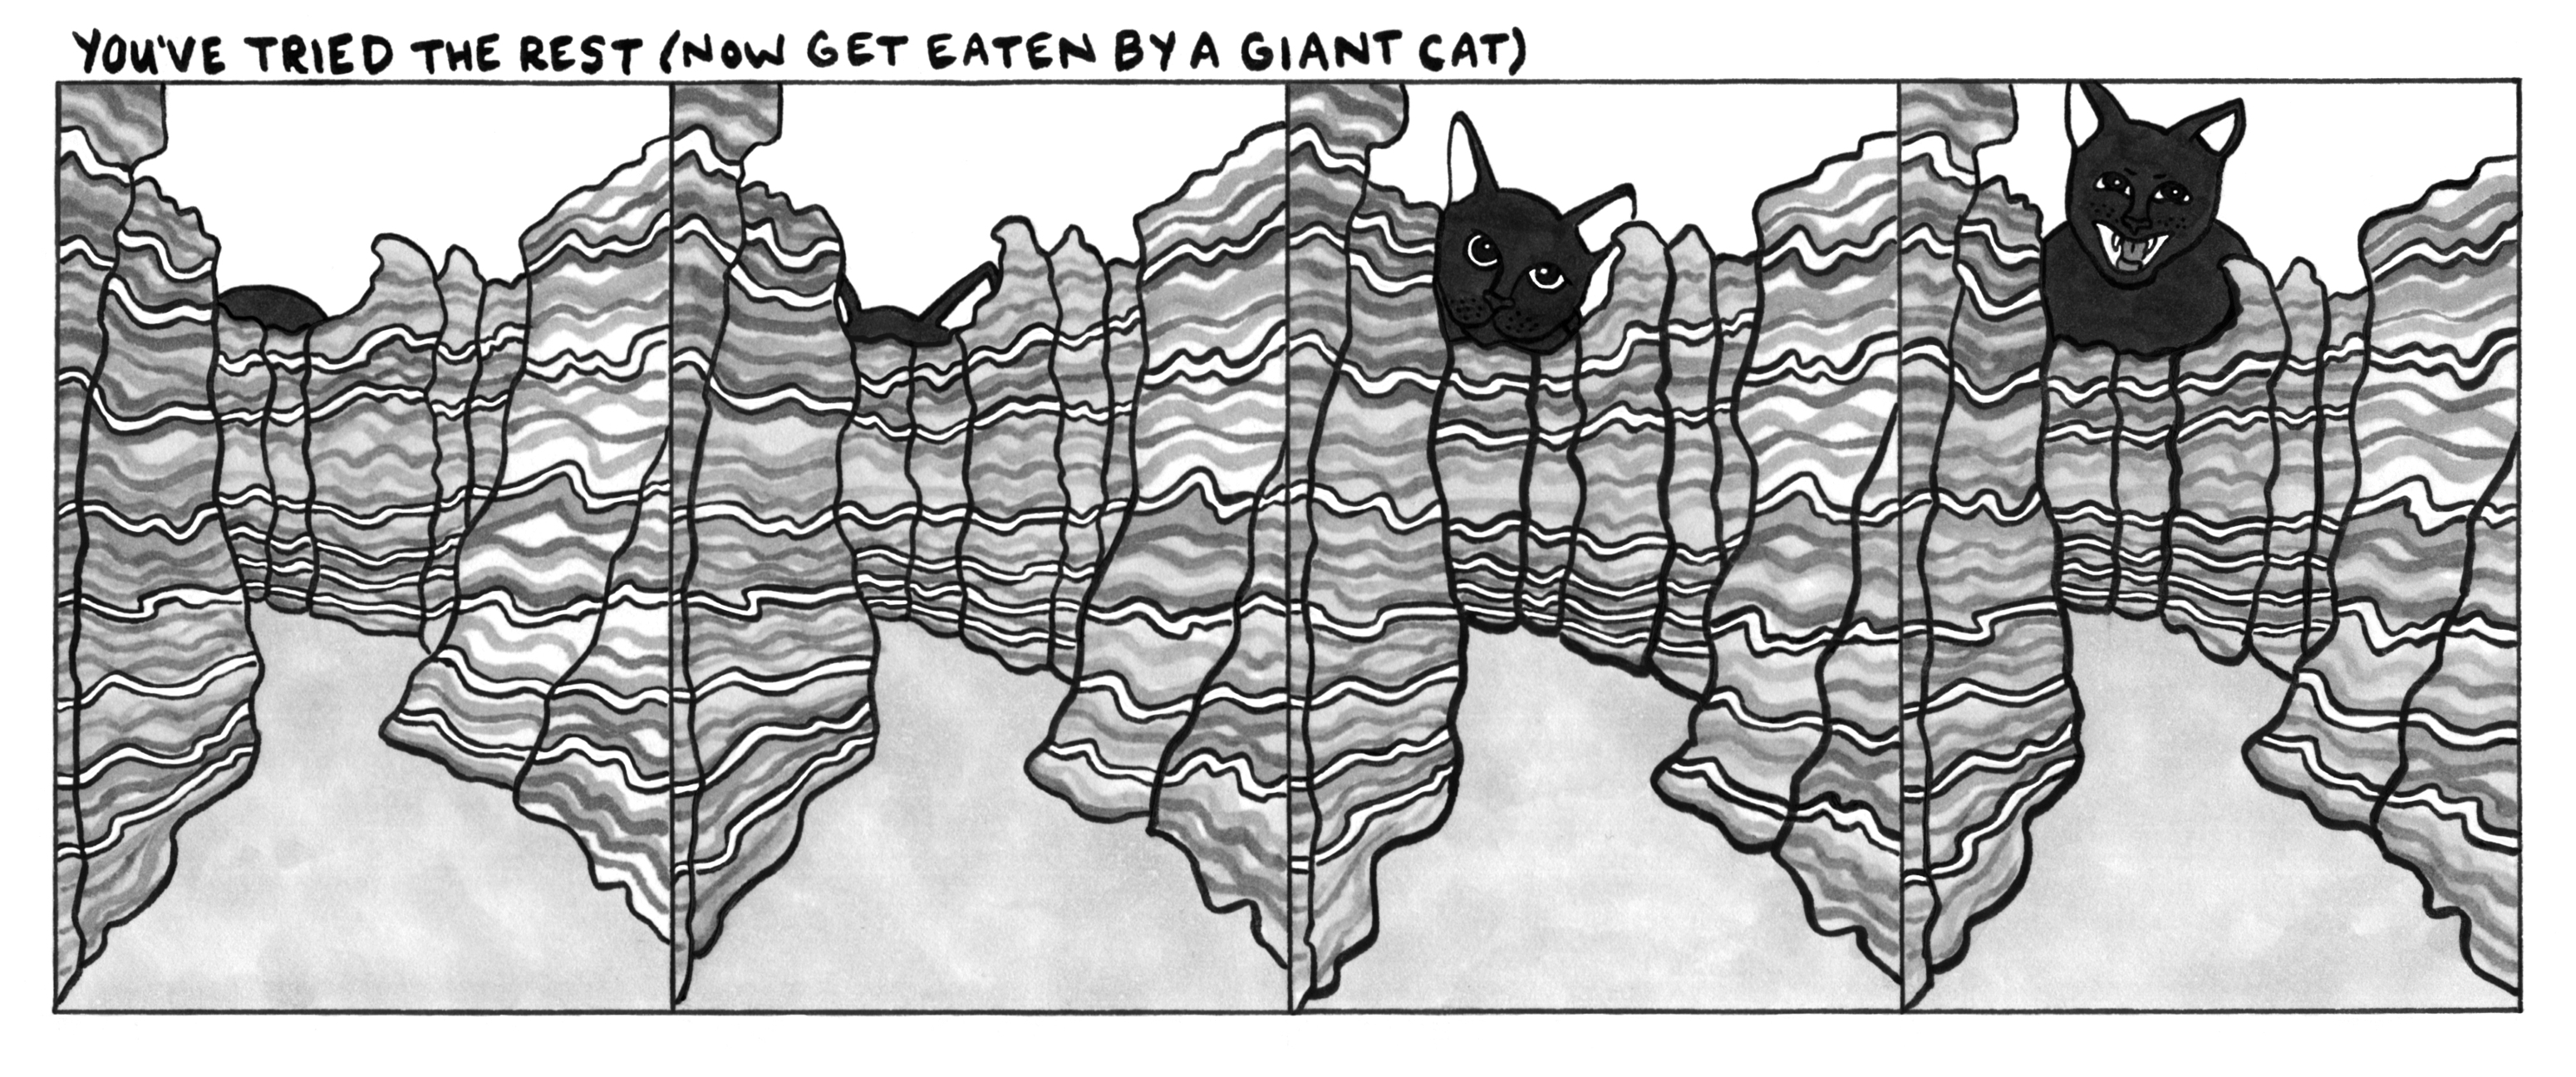 All creatures, great and monstrously huge